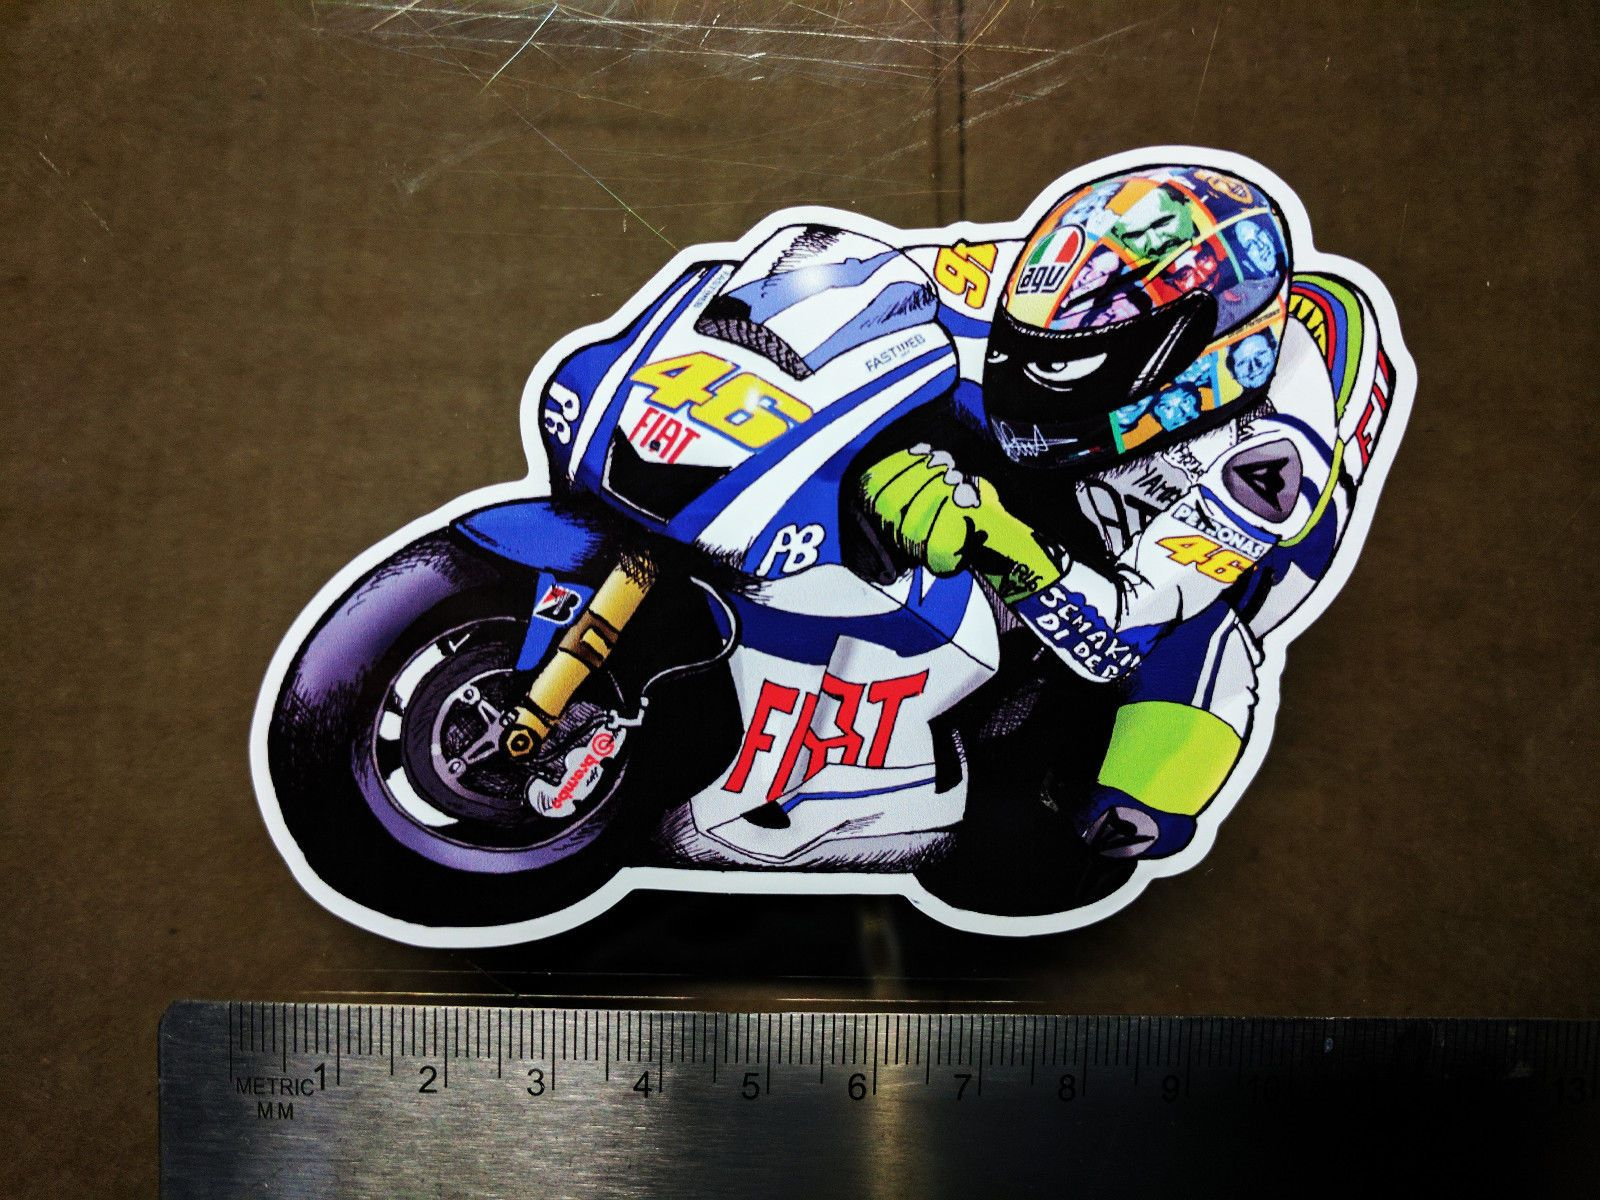 valentino rossi decal sticker moto gp laptop helmet bike car scooter 46 agv hd. Black Bedroom Furniture Sets. Home Design Ideas